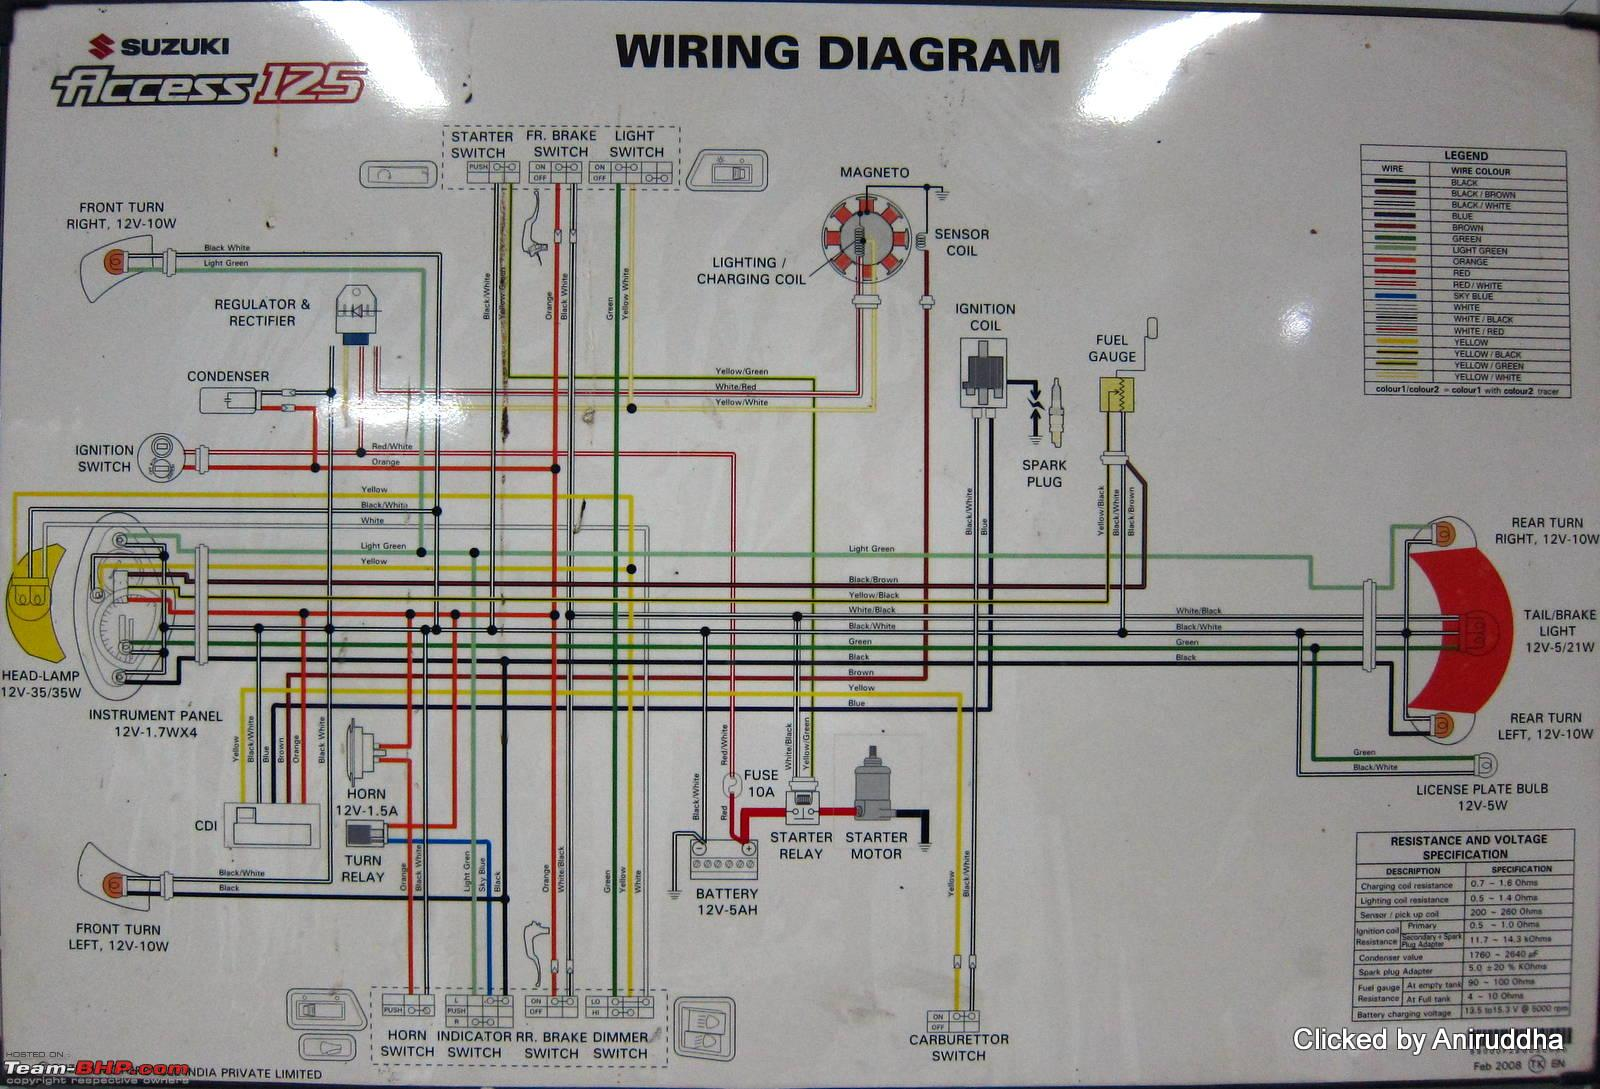 access wiring diagram wiring get image about wiring diagram access wiring diagram